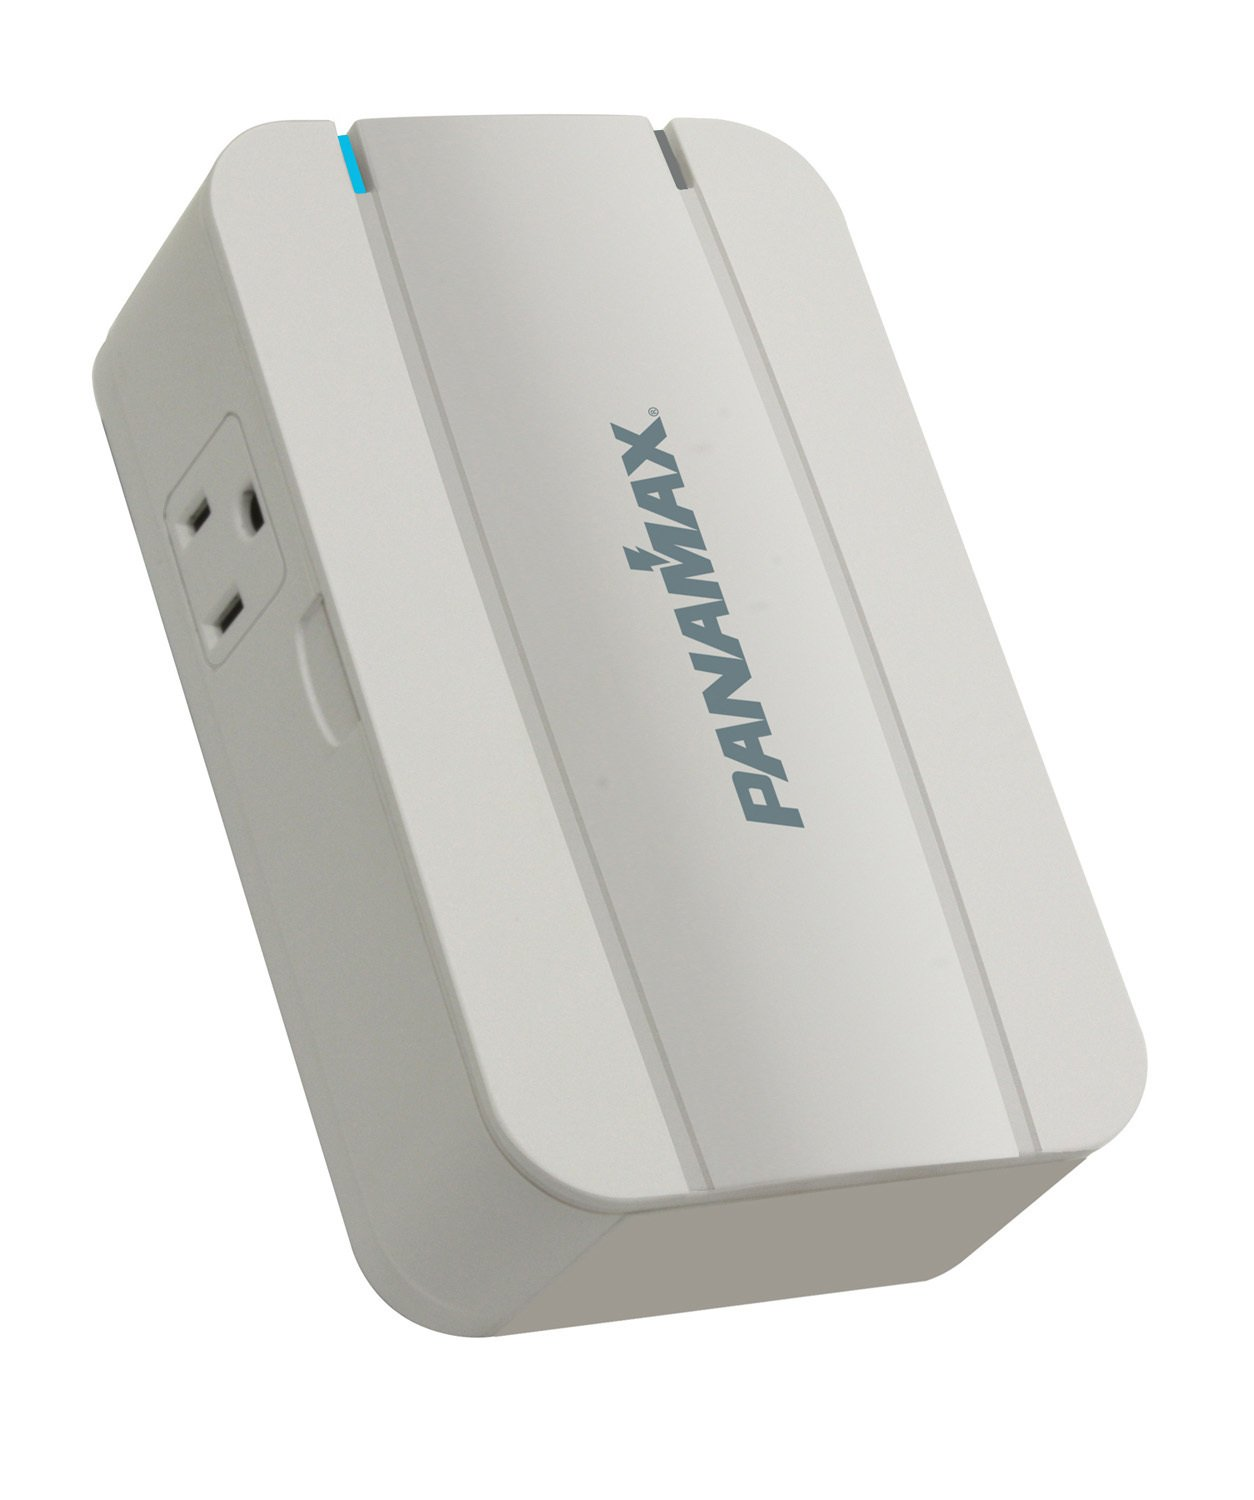 Panamax MD2 2 Outlet Direct Plug In Surge - White